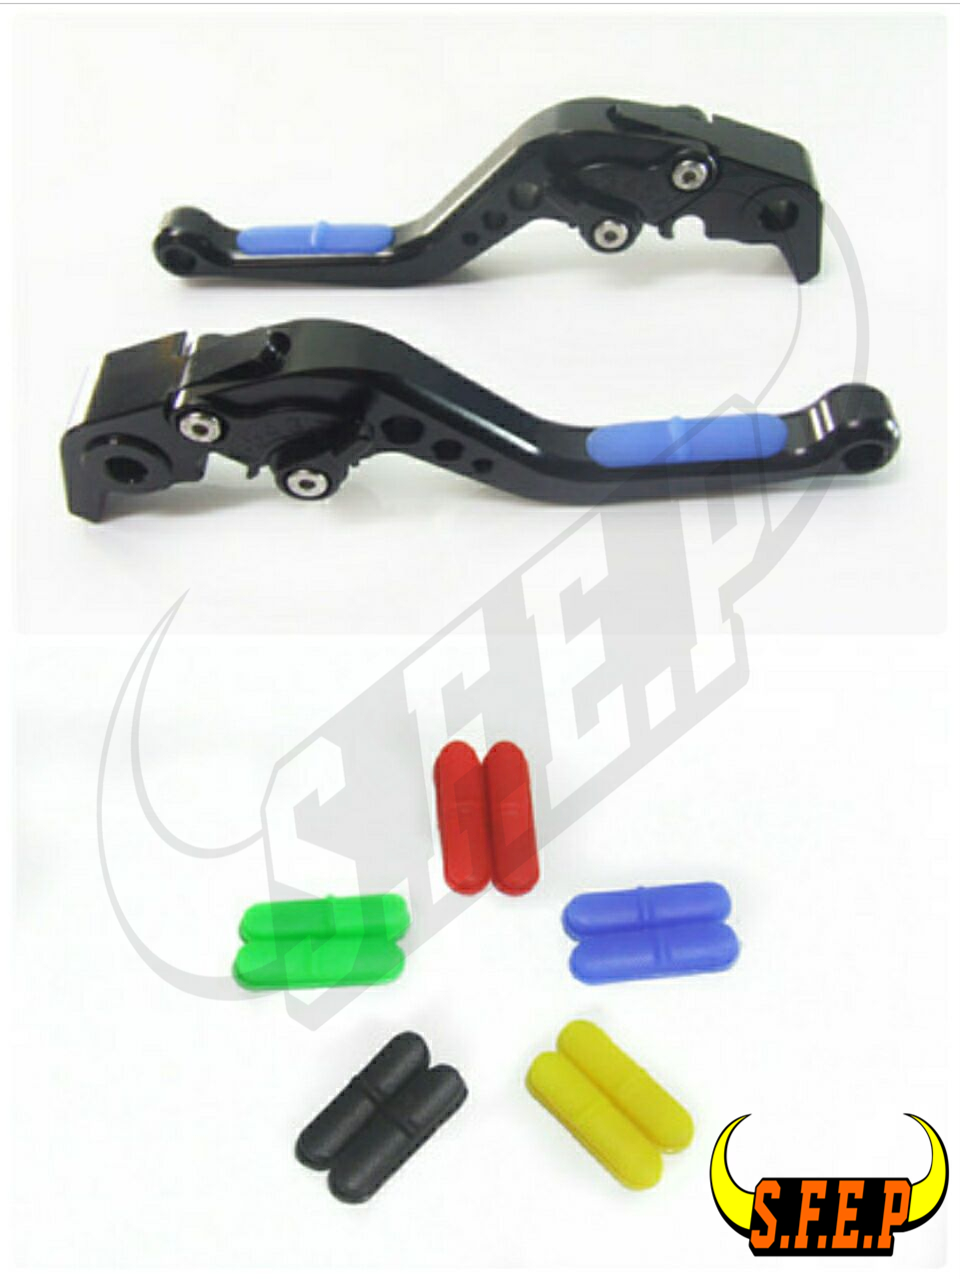 CNC Adjustable Motorcycle Brake and Clutch Levers with Anti-Slip For Yamaha XSR 900 ABS 2016-2018